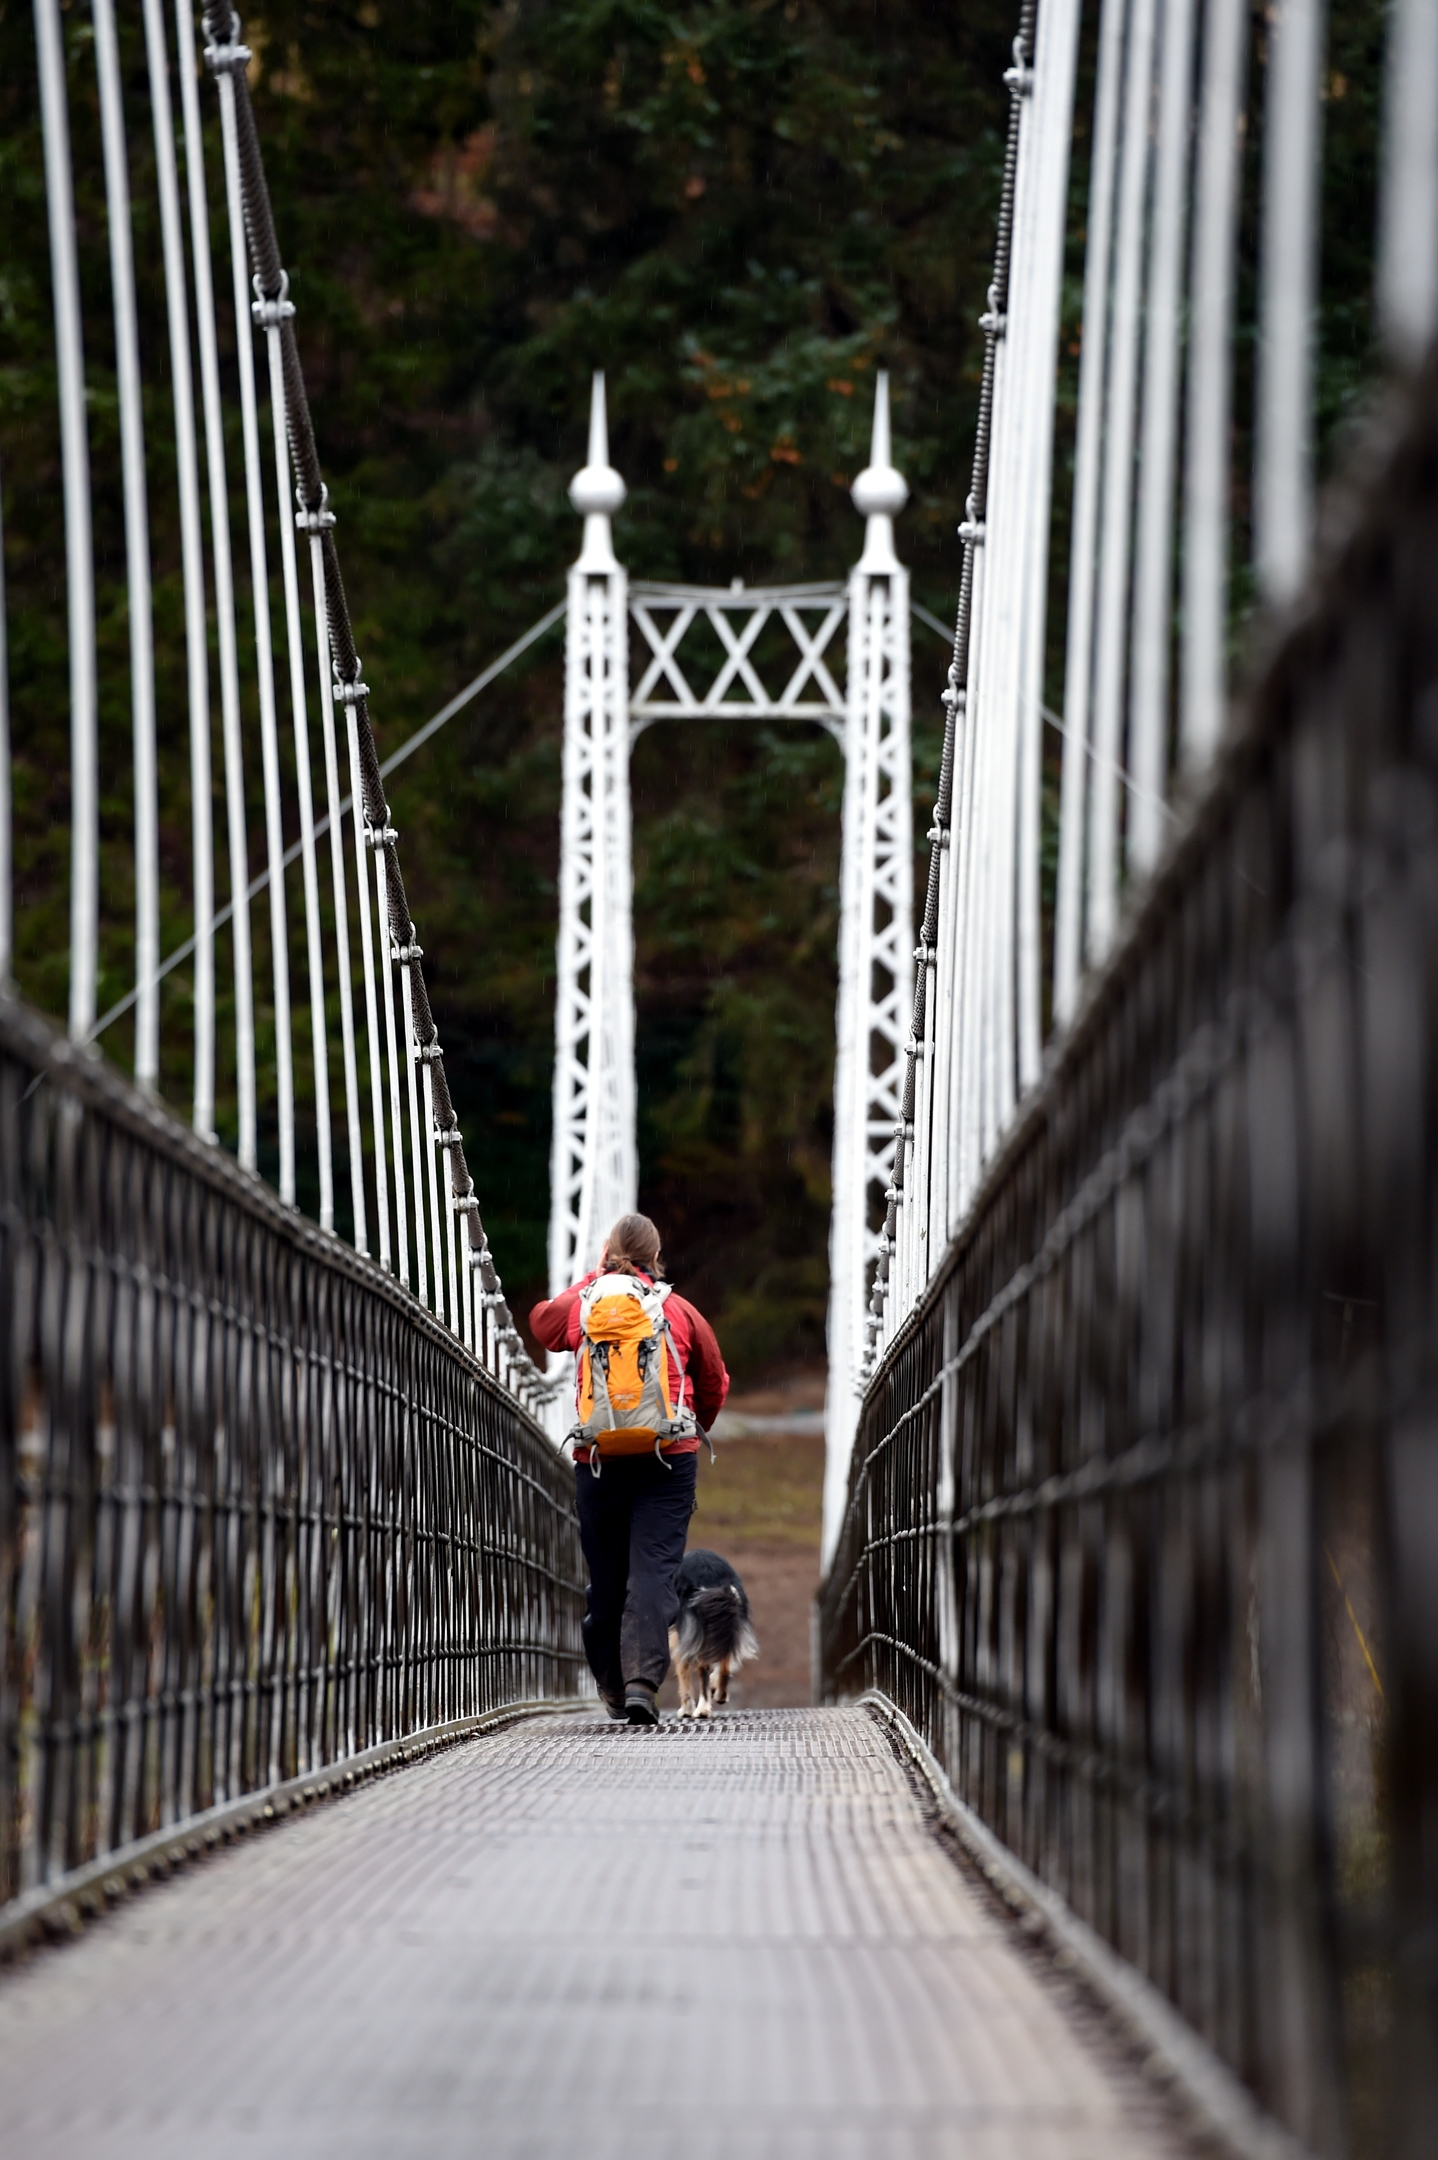 Search for missing Aberlour woman. SARDA dog and handler crossing the bridge at Aberlour before searching along the River Spey. Picture by Gordon Lennox